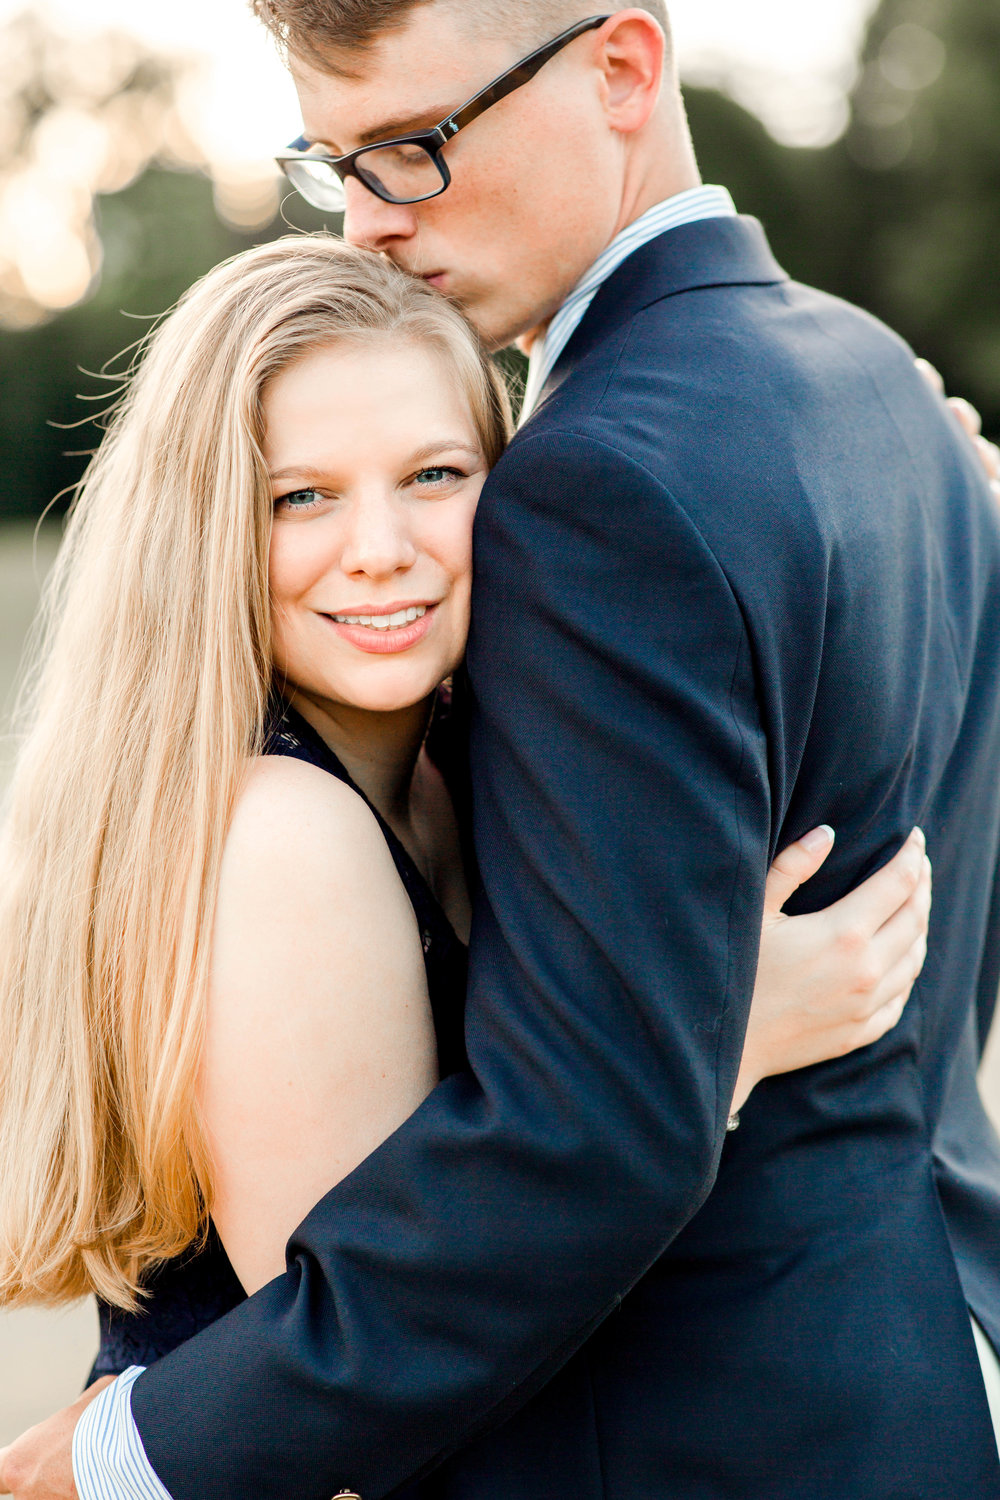 MaryElizabeth_Will_Engagement-144.JPG